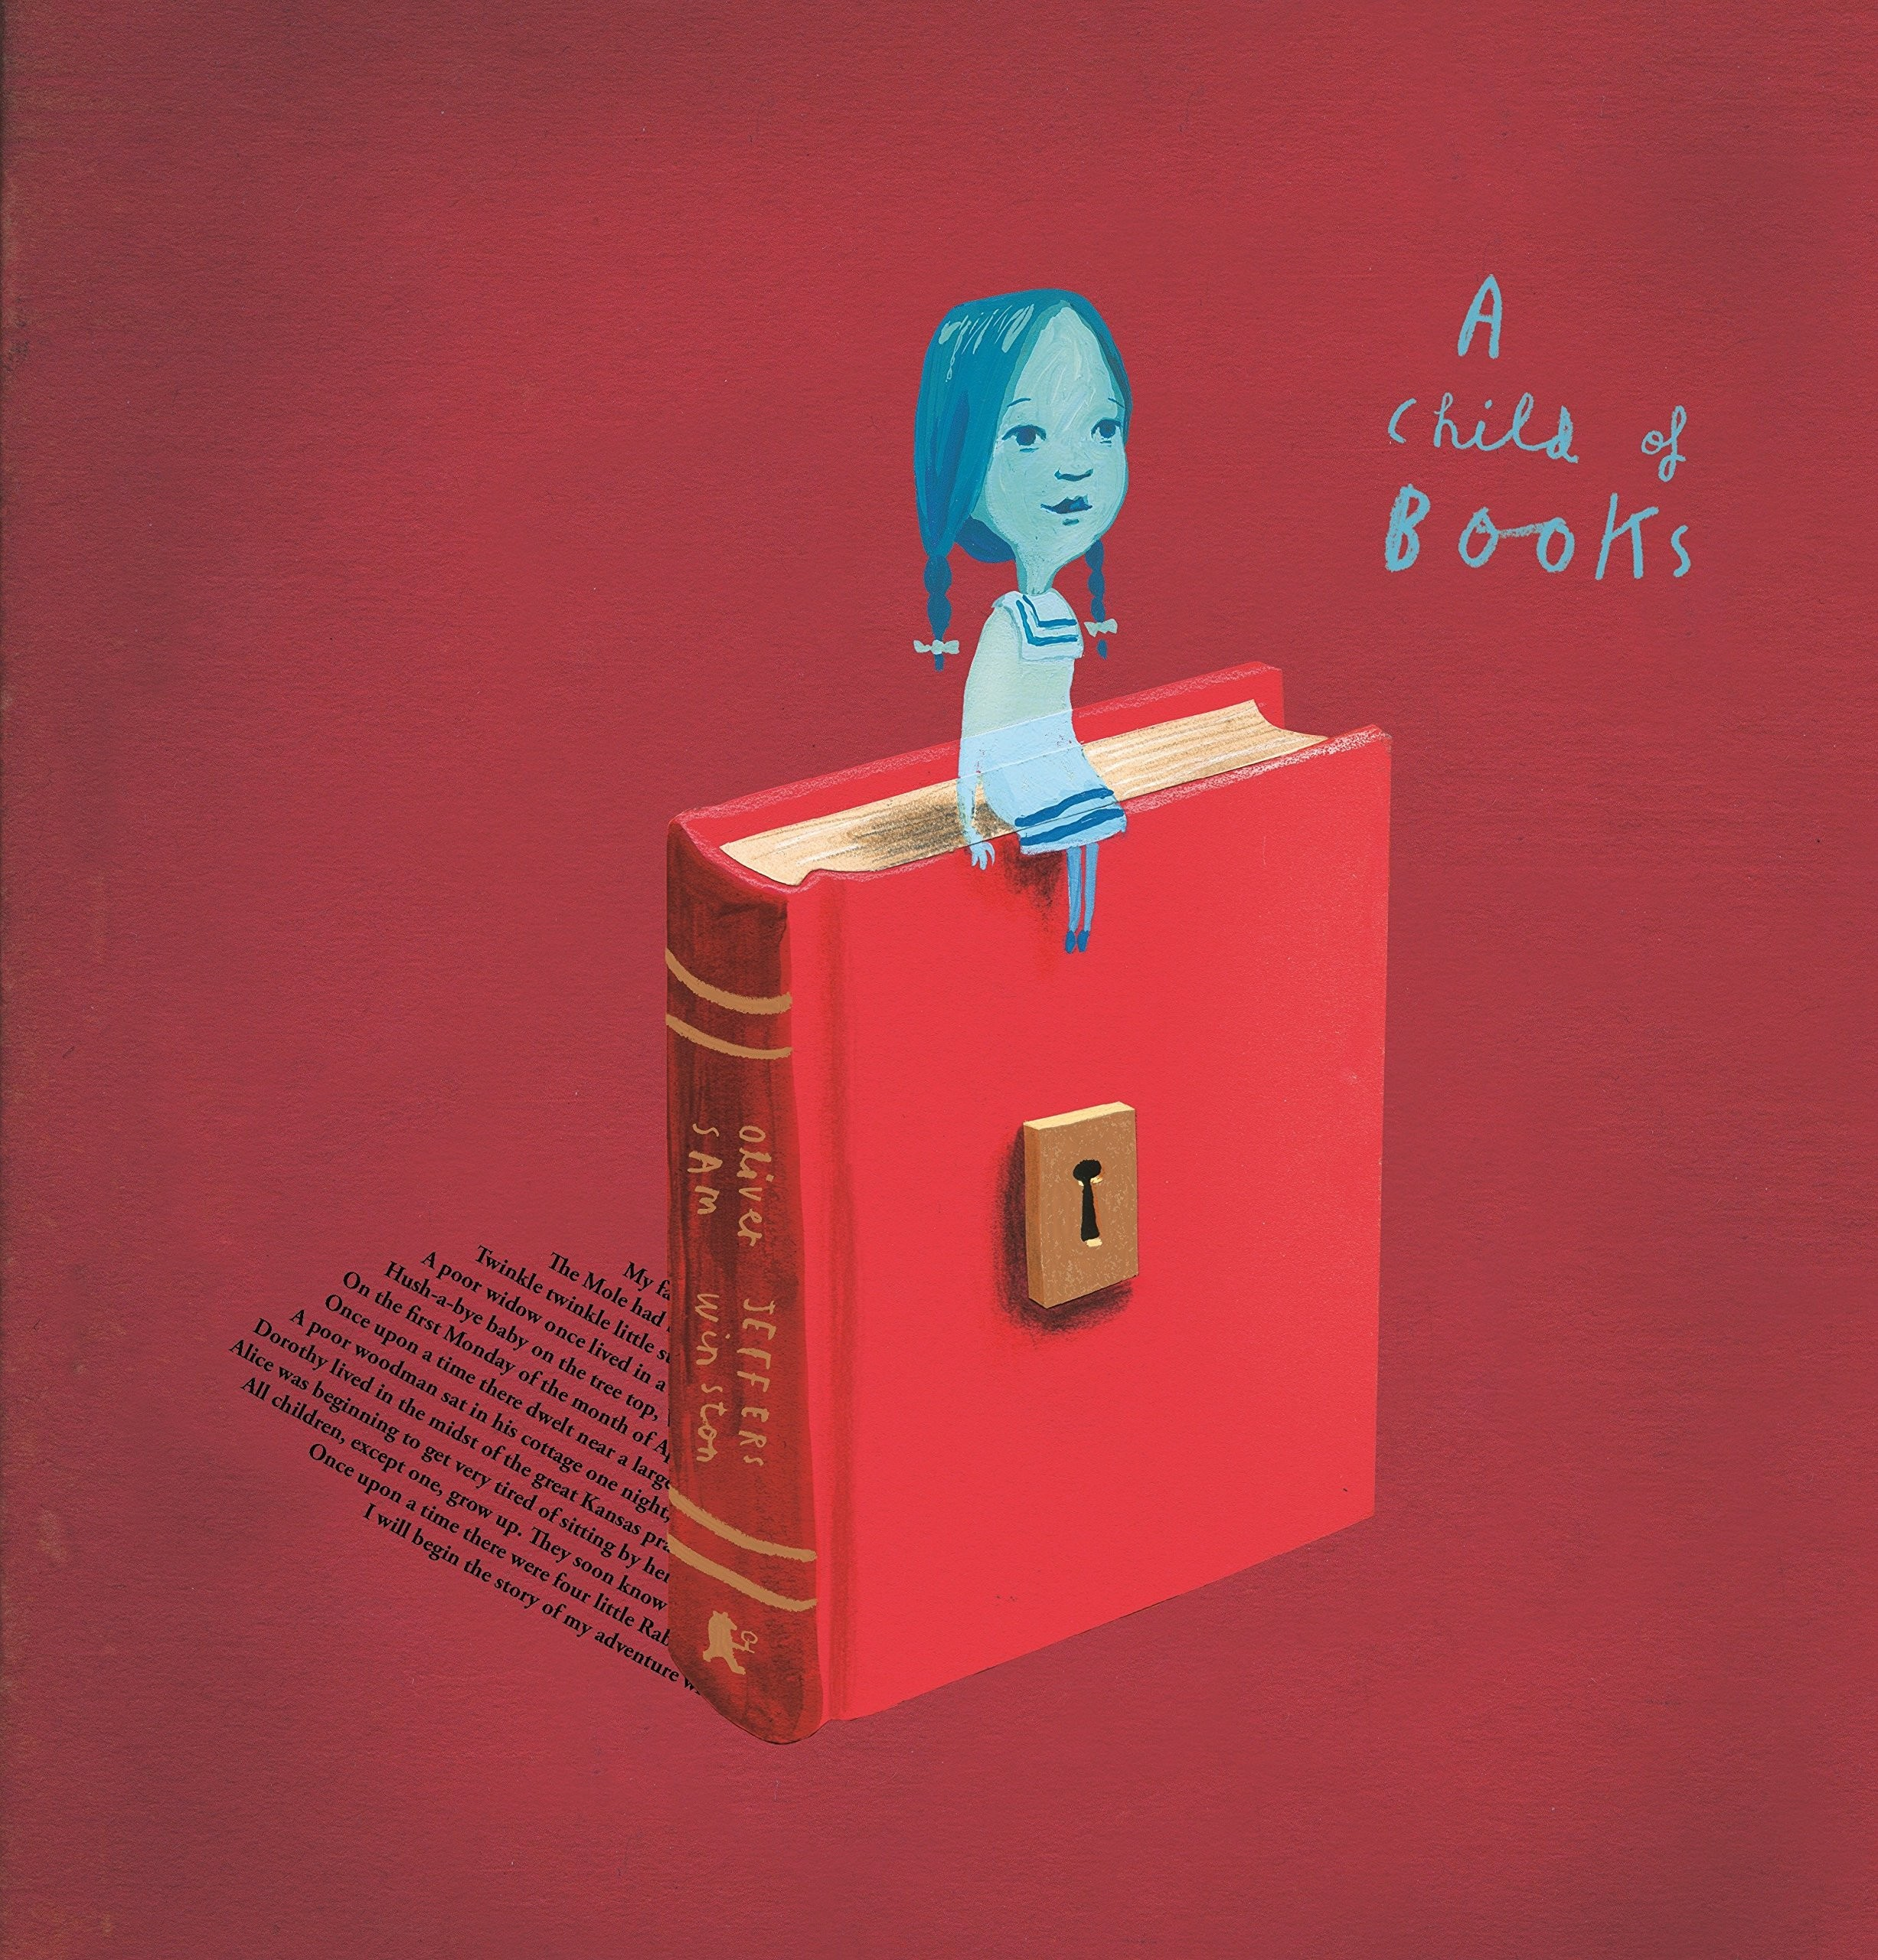 a child of books oliver jeffers celebrate reading value childhood